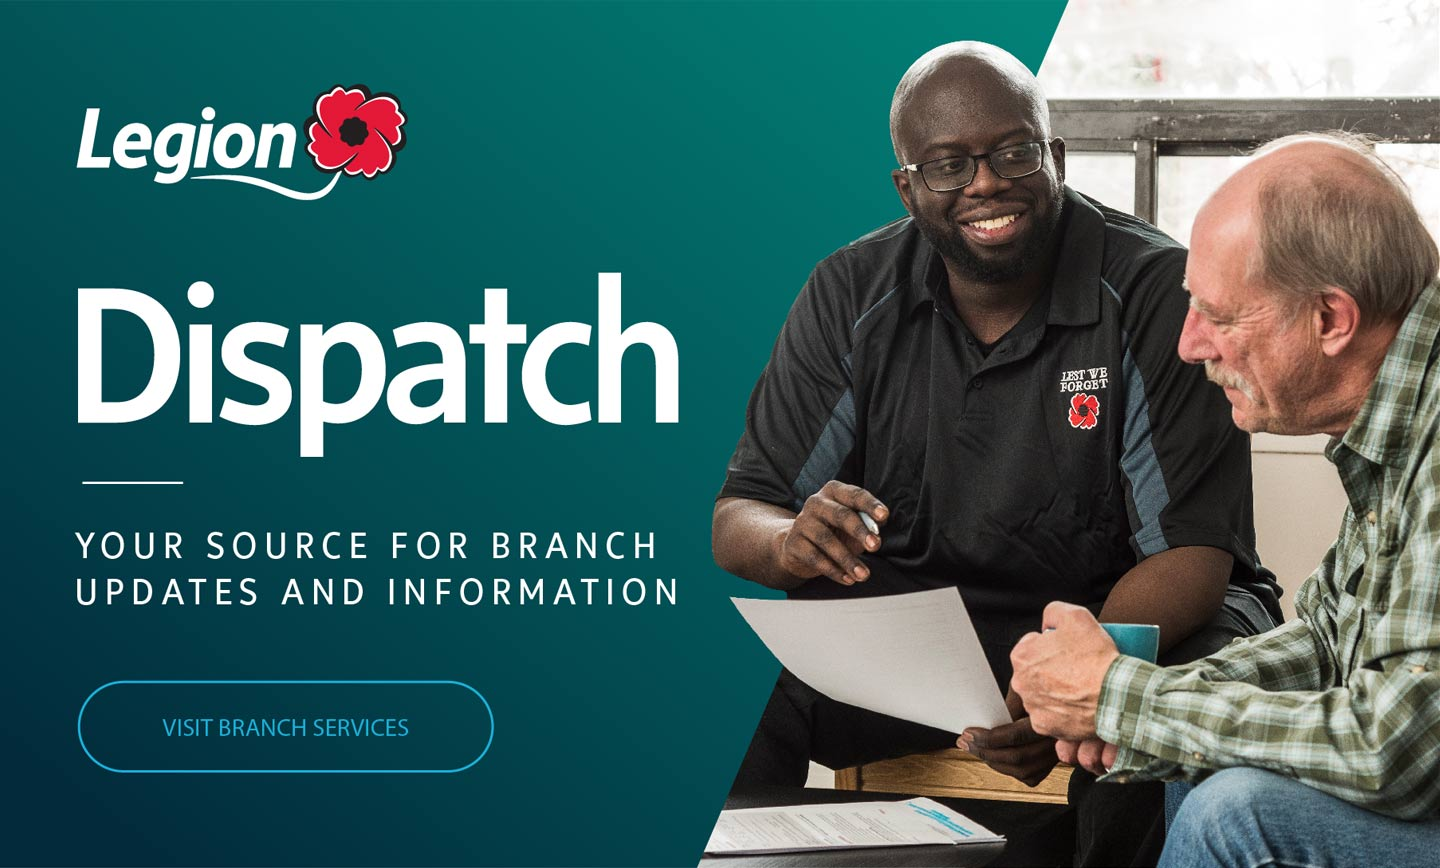 Legion Dispatch. Visit branch services.